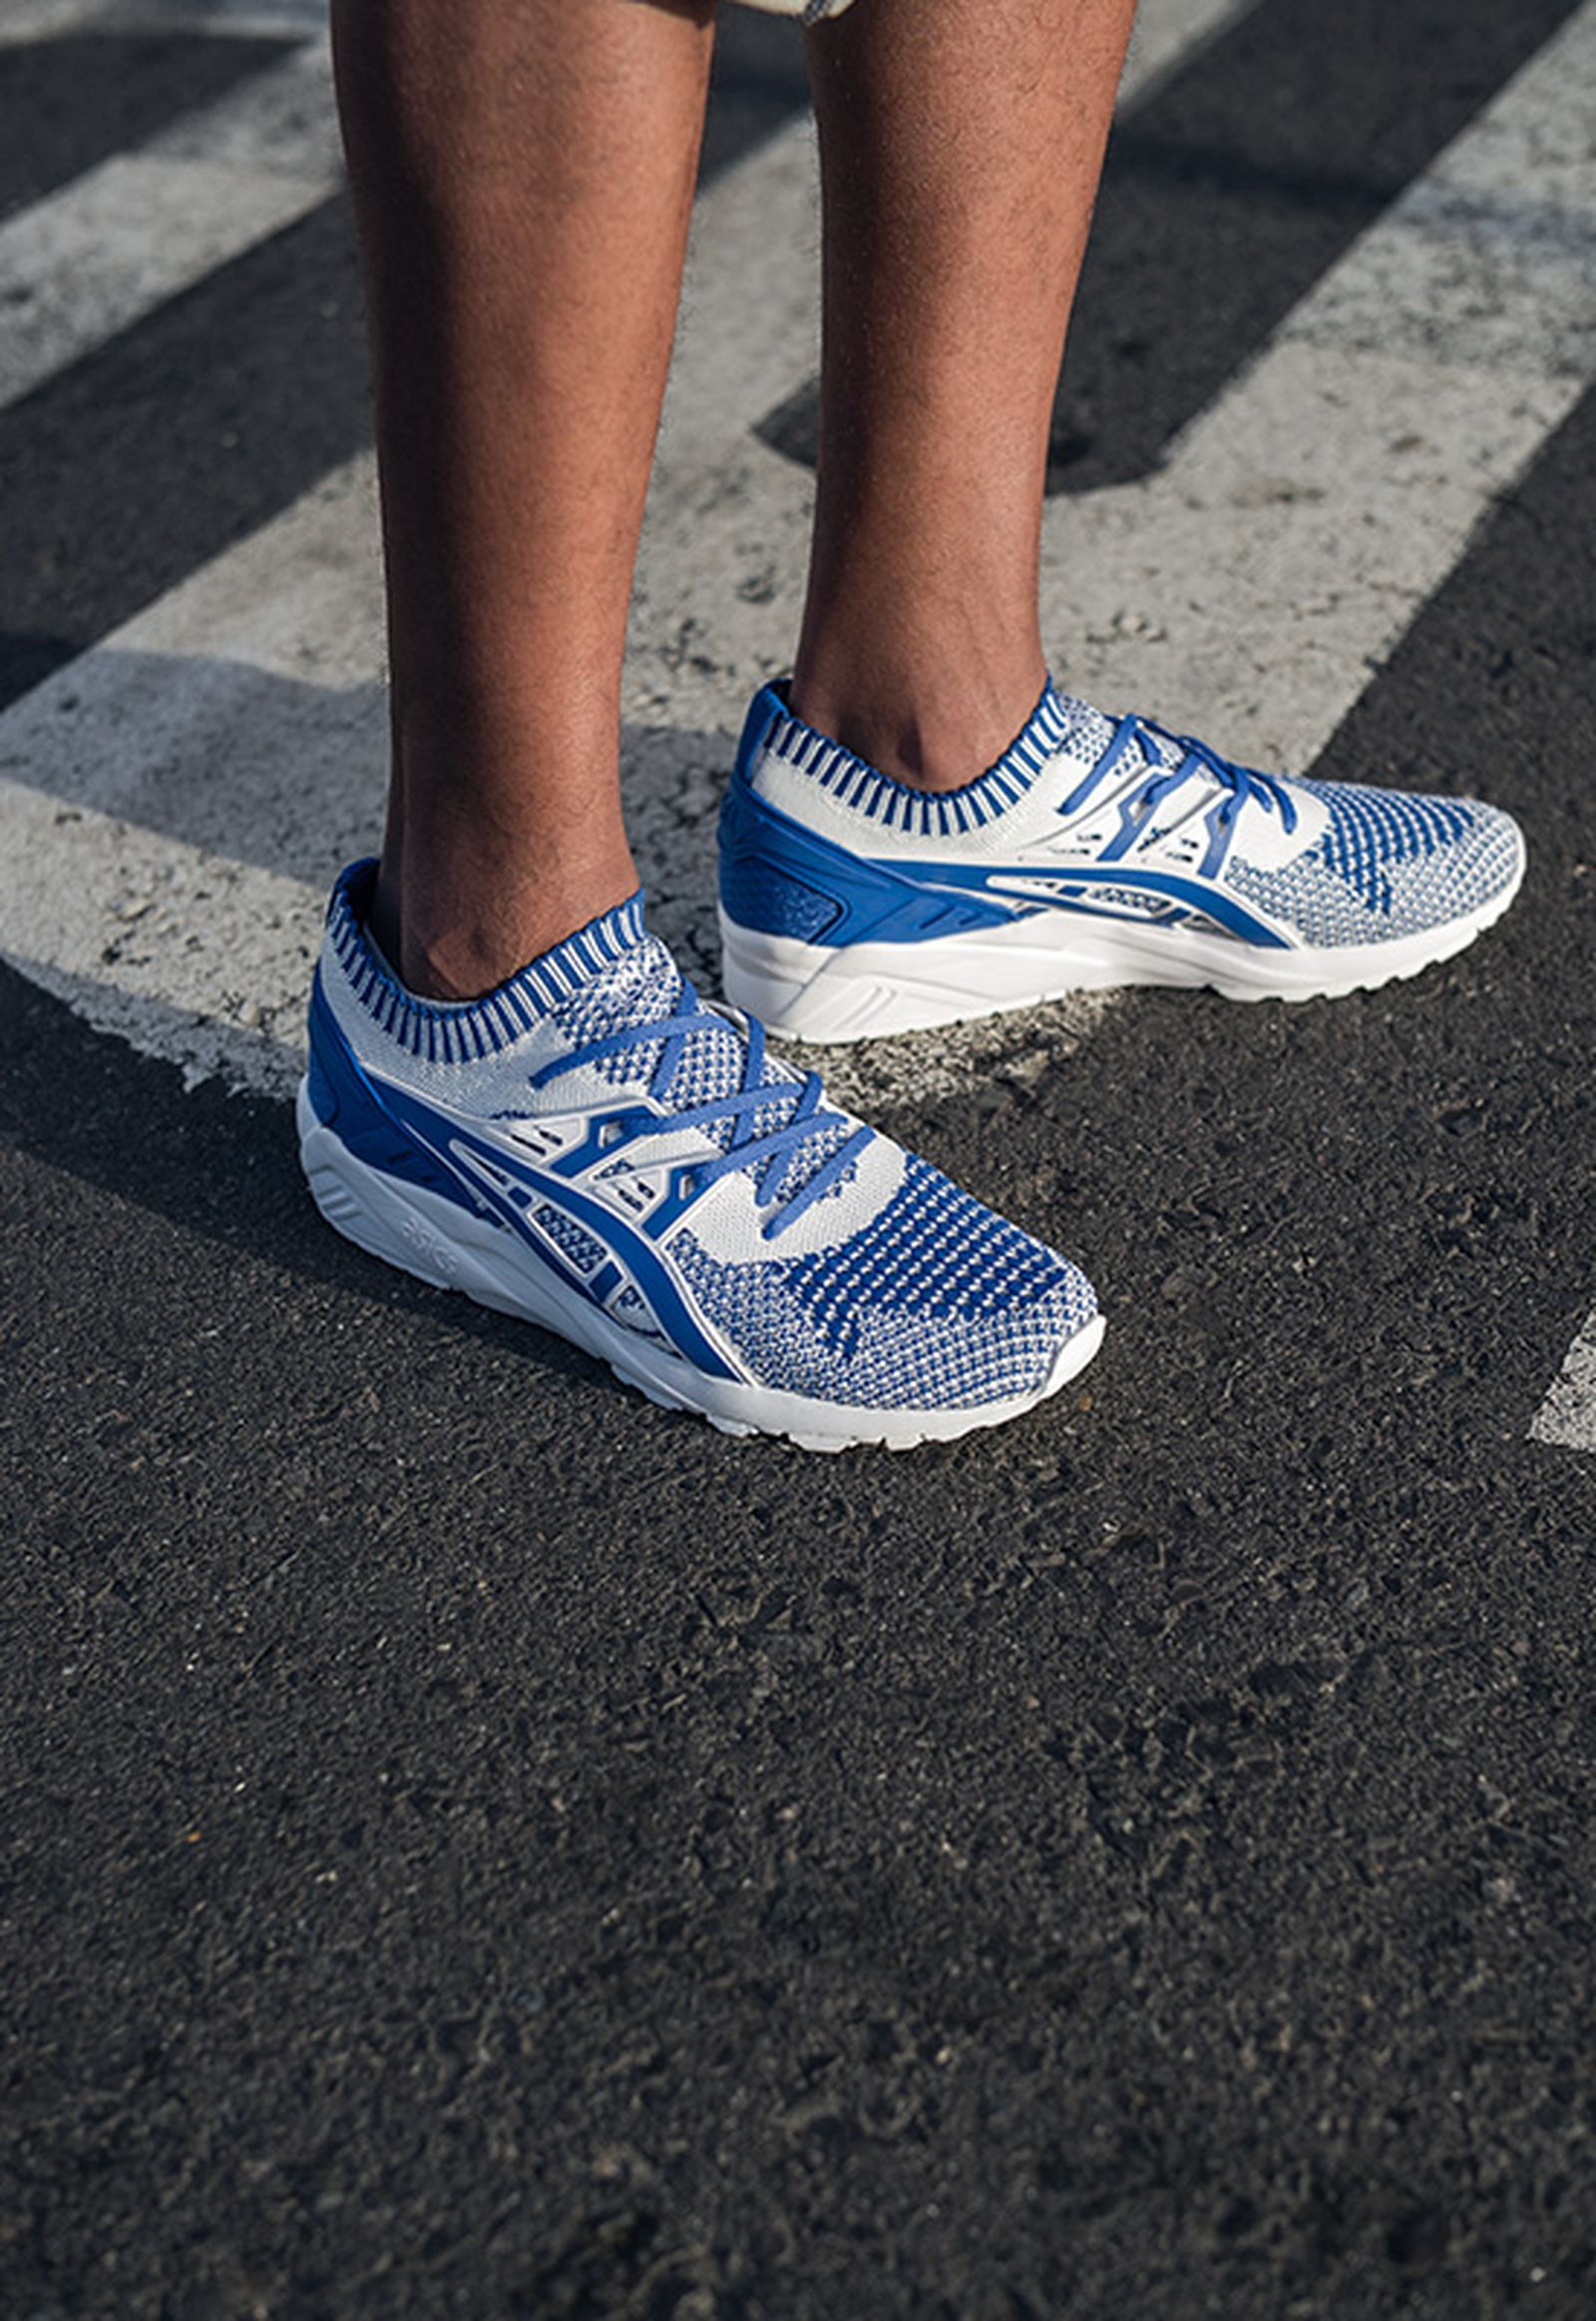 asics-tiger-gel-kayano-trainer-knit-colors-10